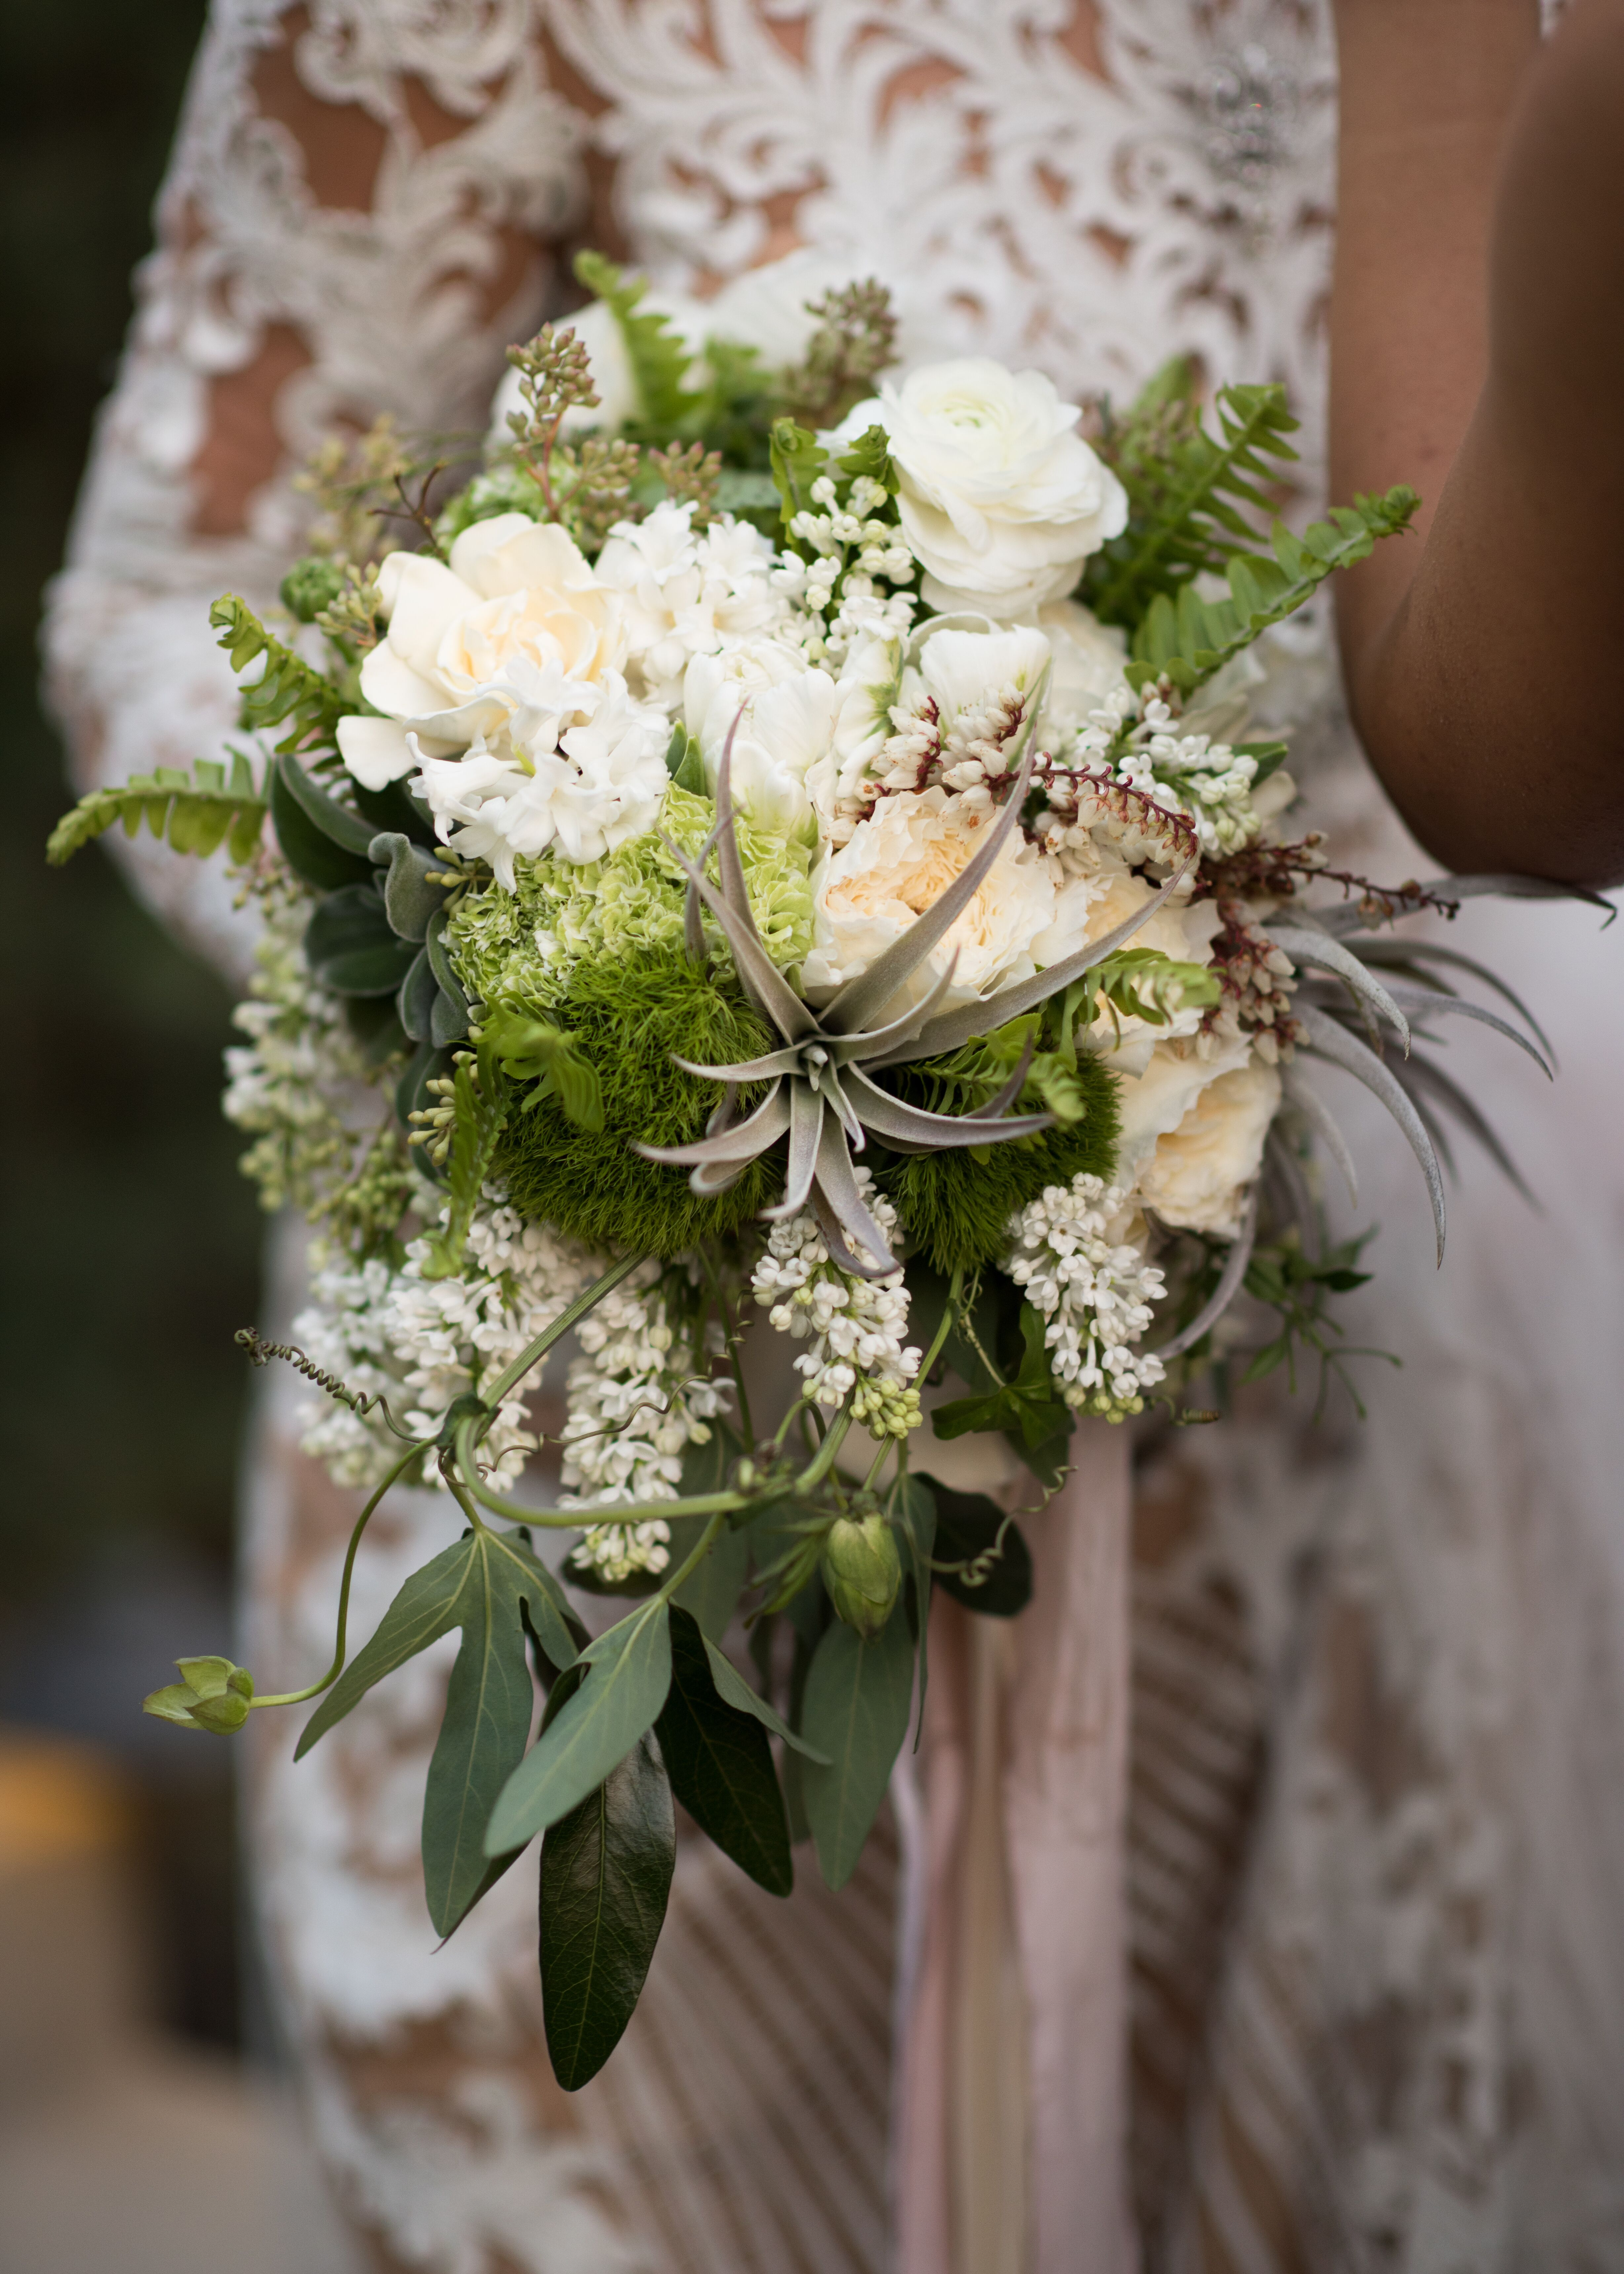 Bouquet With White Flowers And Greenery